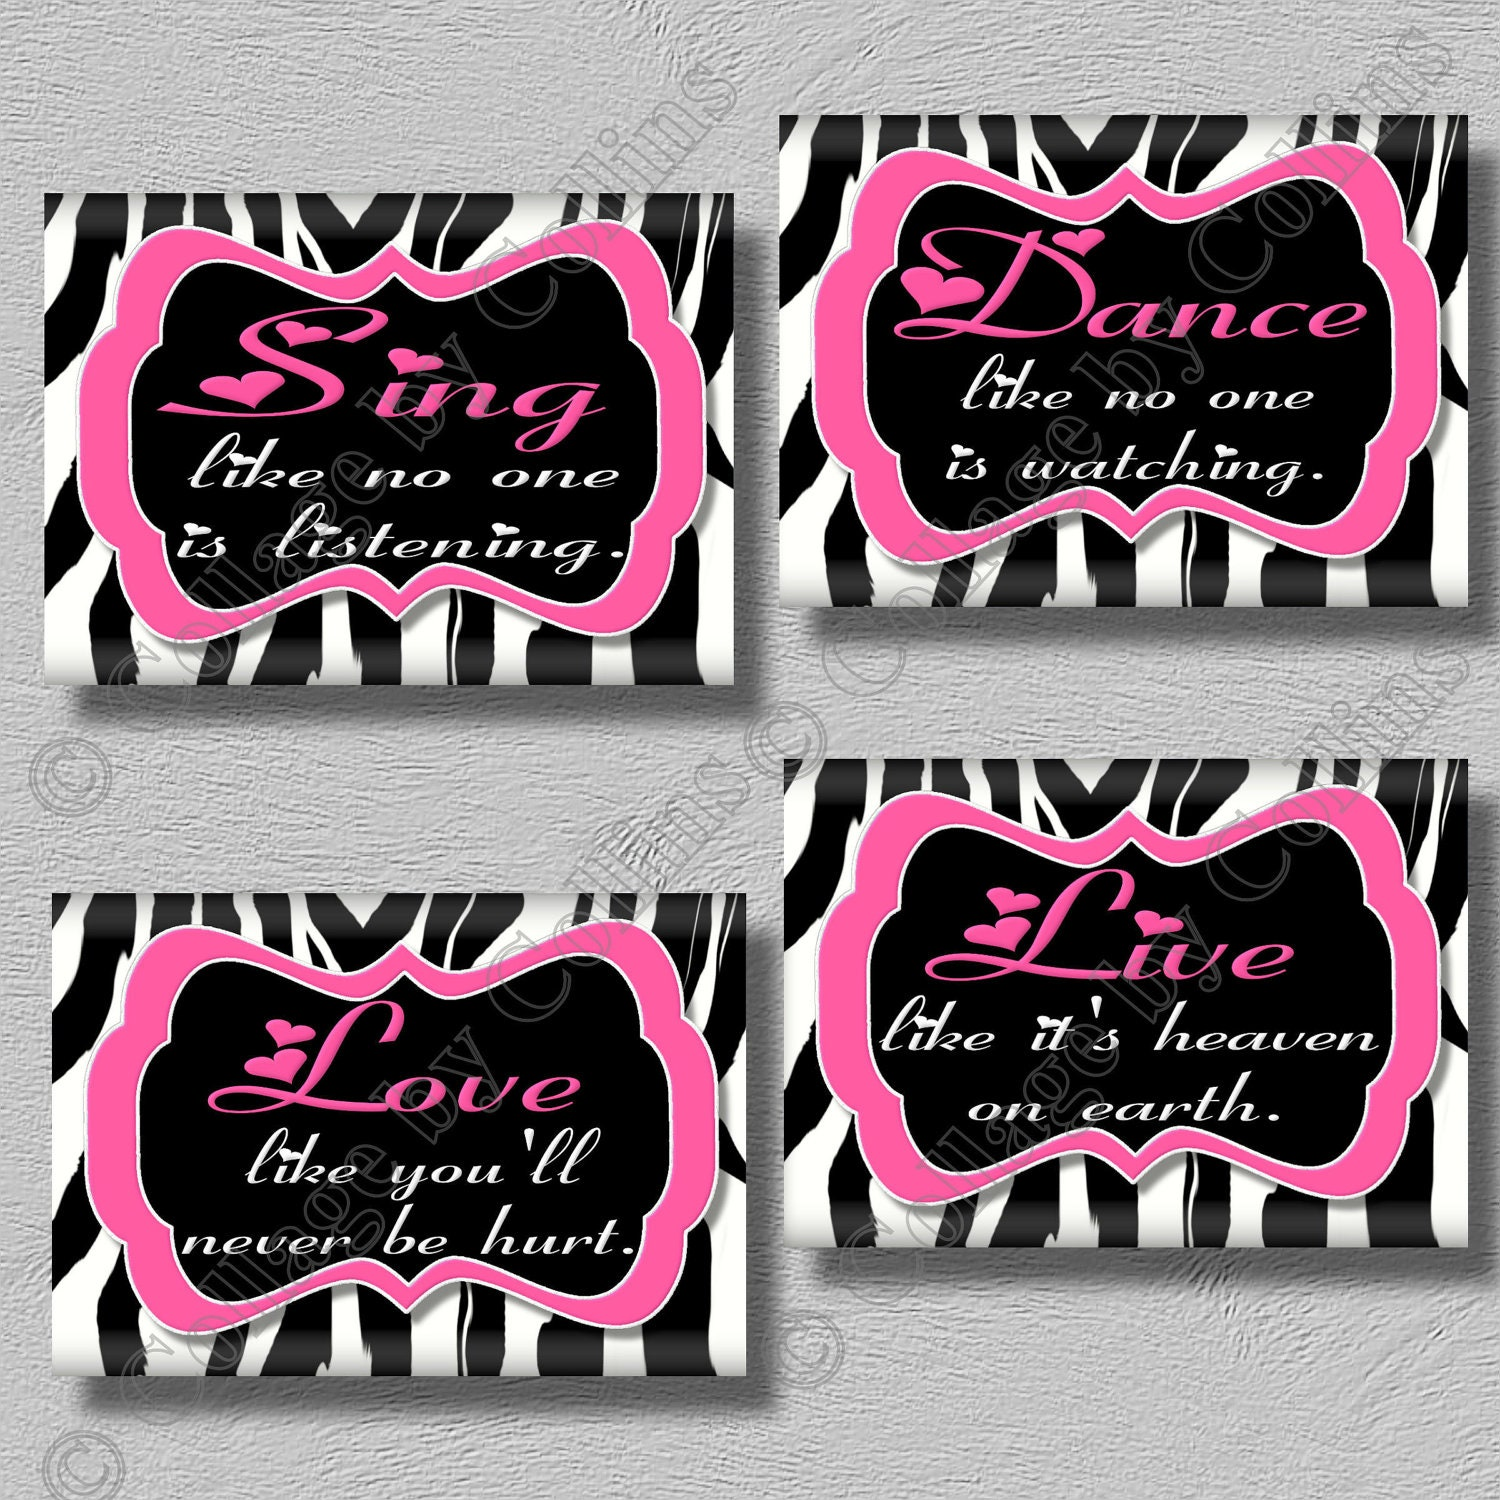 Awesome Art Girls Room Wall Decor Hot Pink Zebra Print Dance Sing Live Love By  Collagebycollins